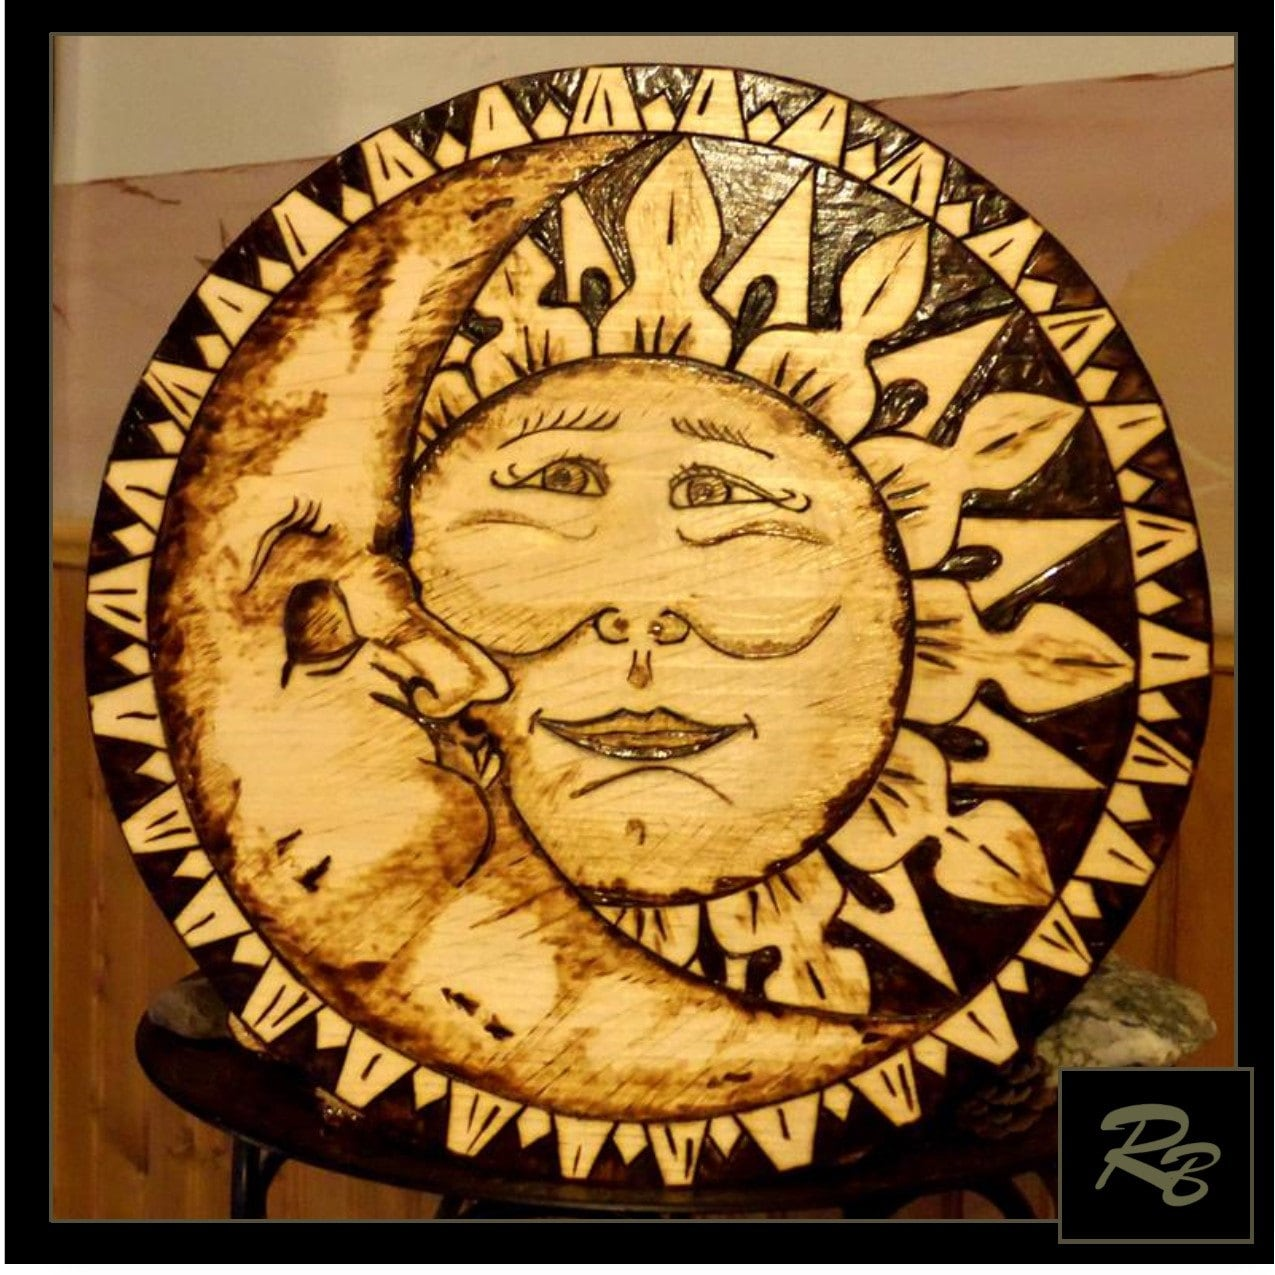 Perfect Celestial Sun Wall Decor Motif - Wall Art Collections .  sc 1 st  Fastingforourfuture.org & Exelent Celestial Wall Decor Motif - Wall Art Collections ...